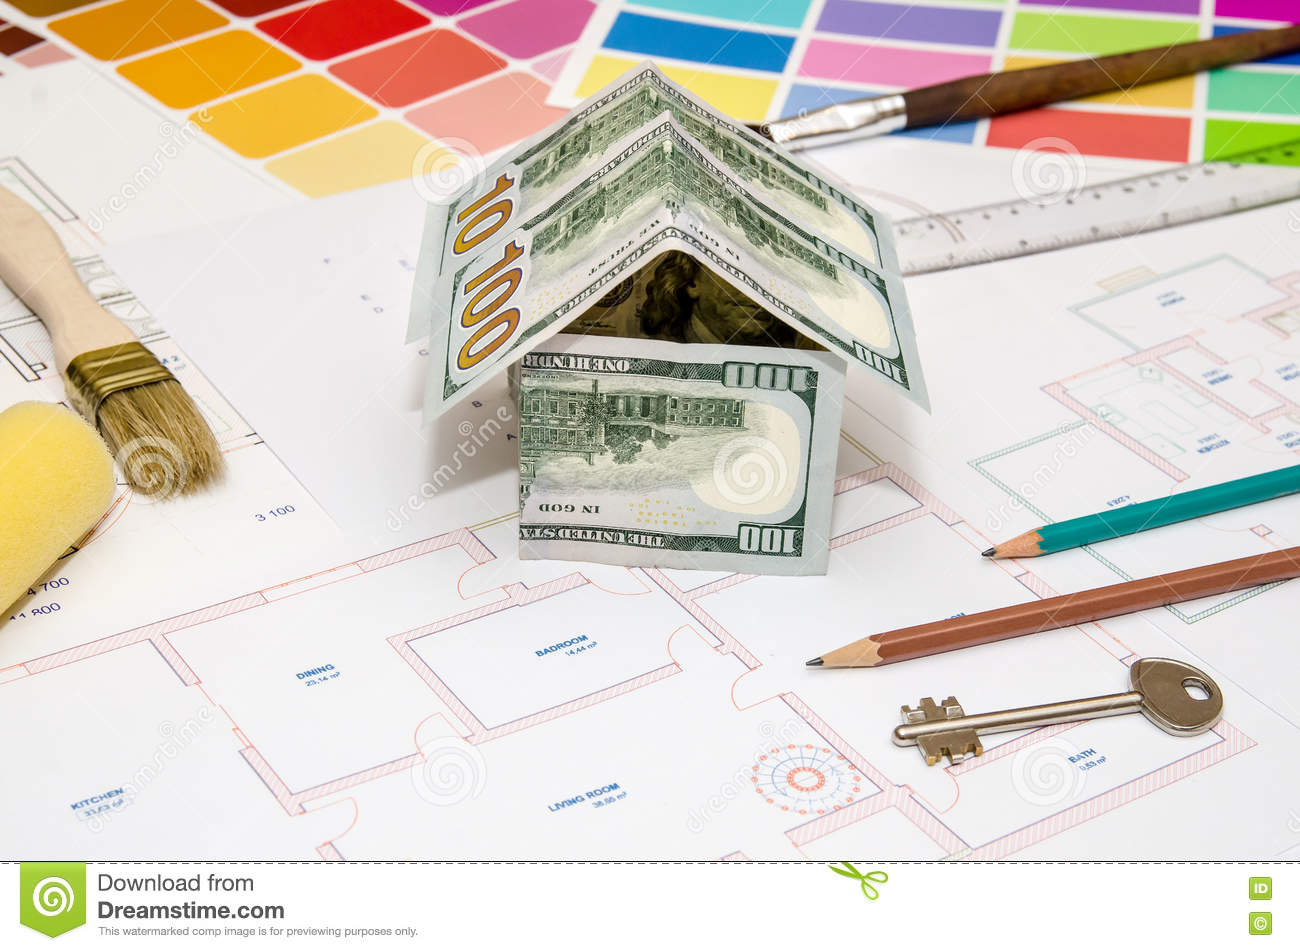 Architectural Drawings For Houses With Dollar Paints Stock Photo